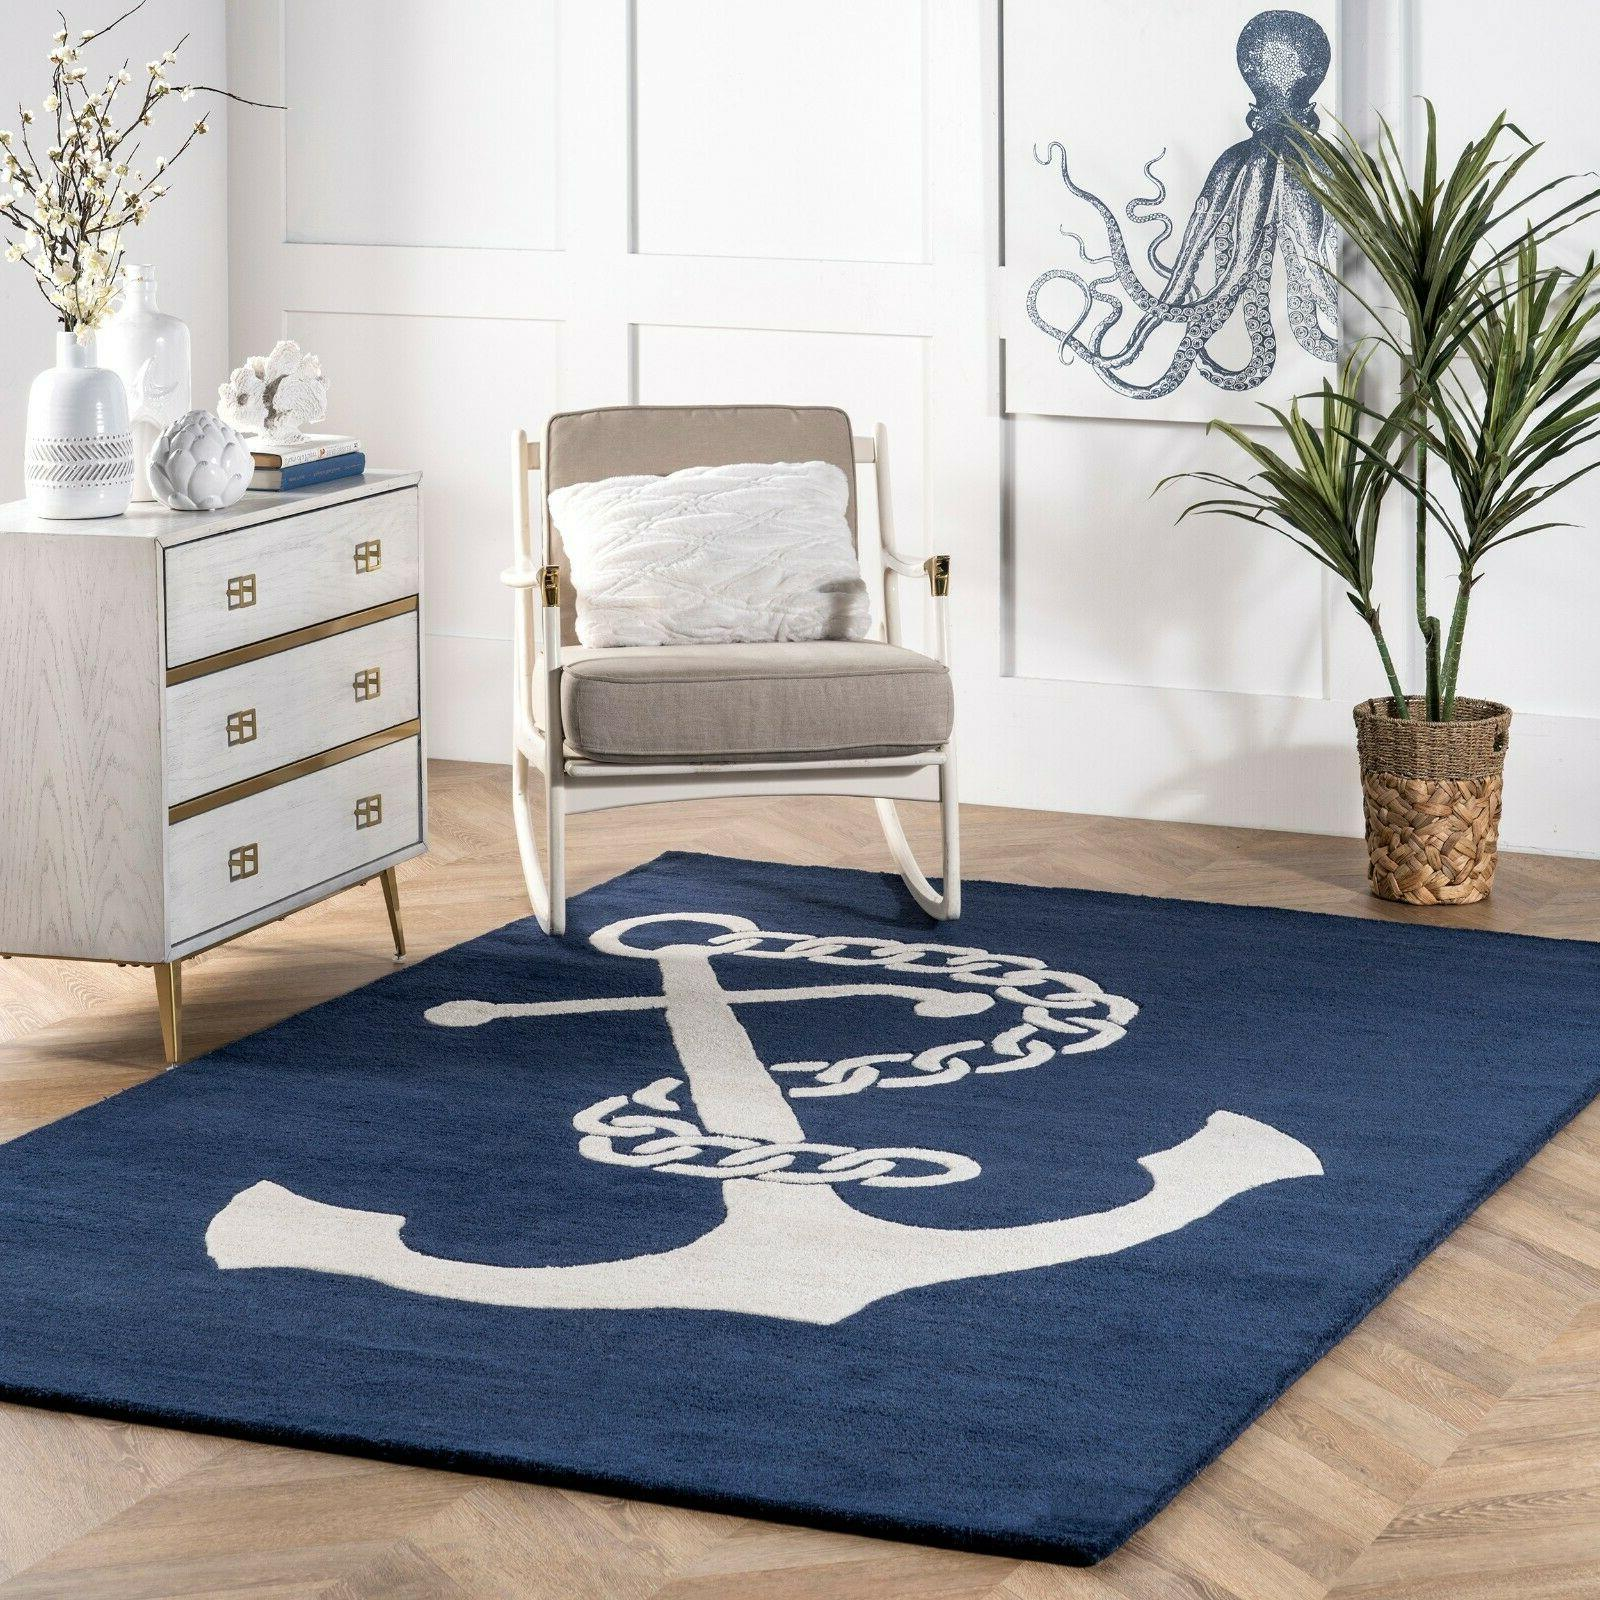 Handmade Coastal Anchor Nautical Wool Area Rug